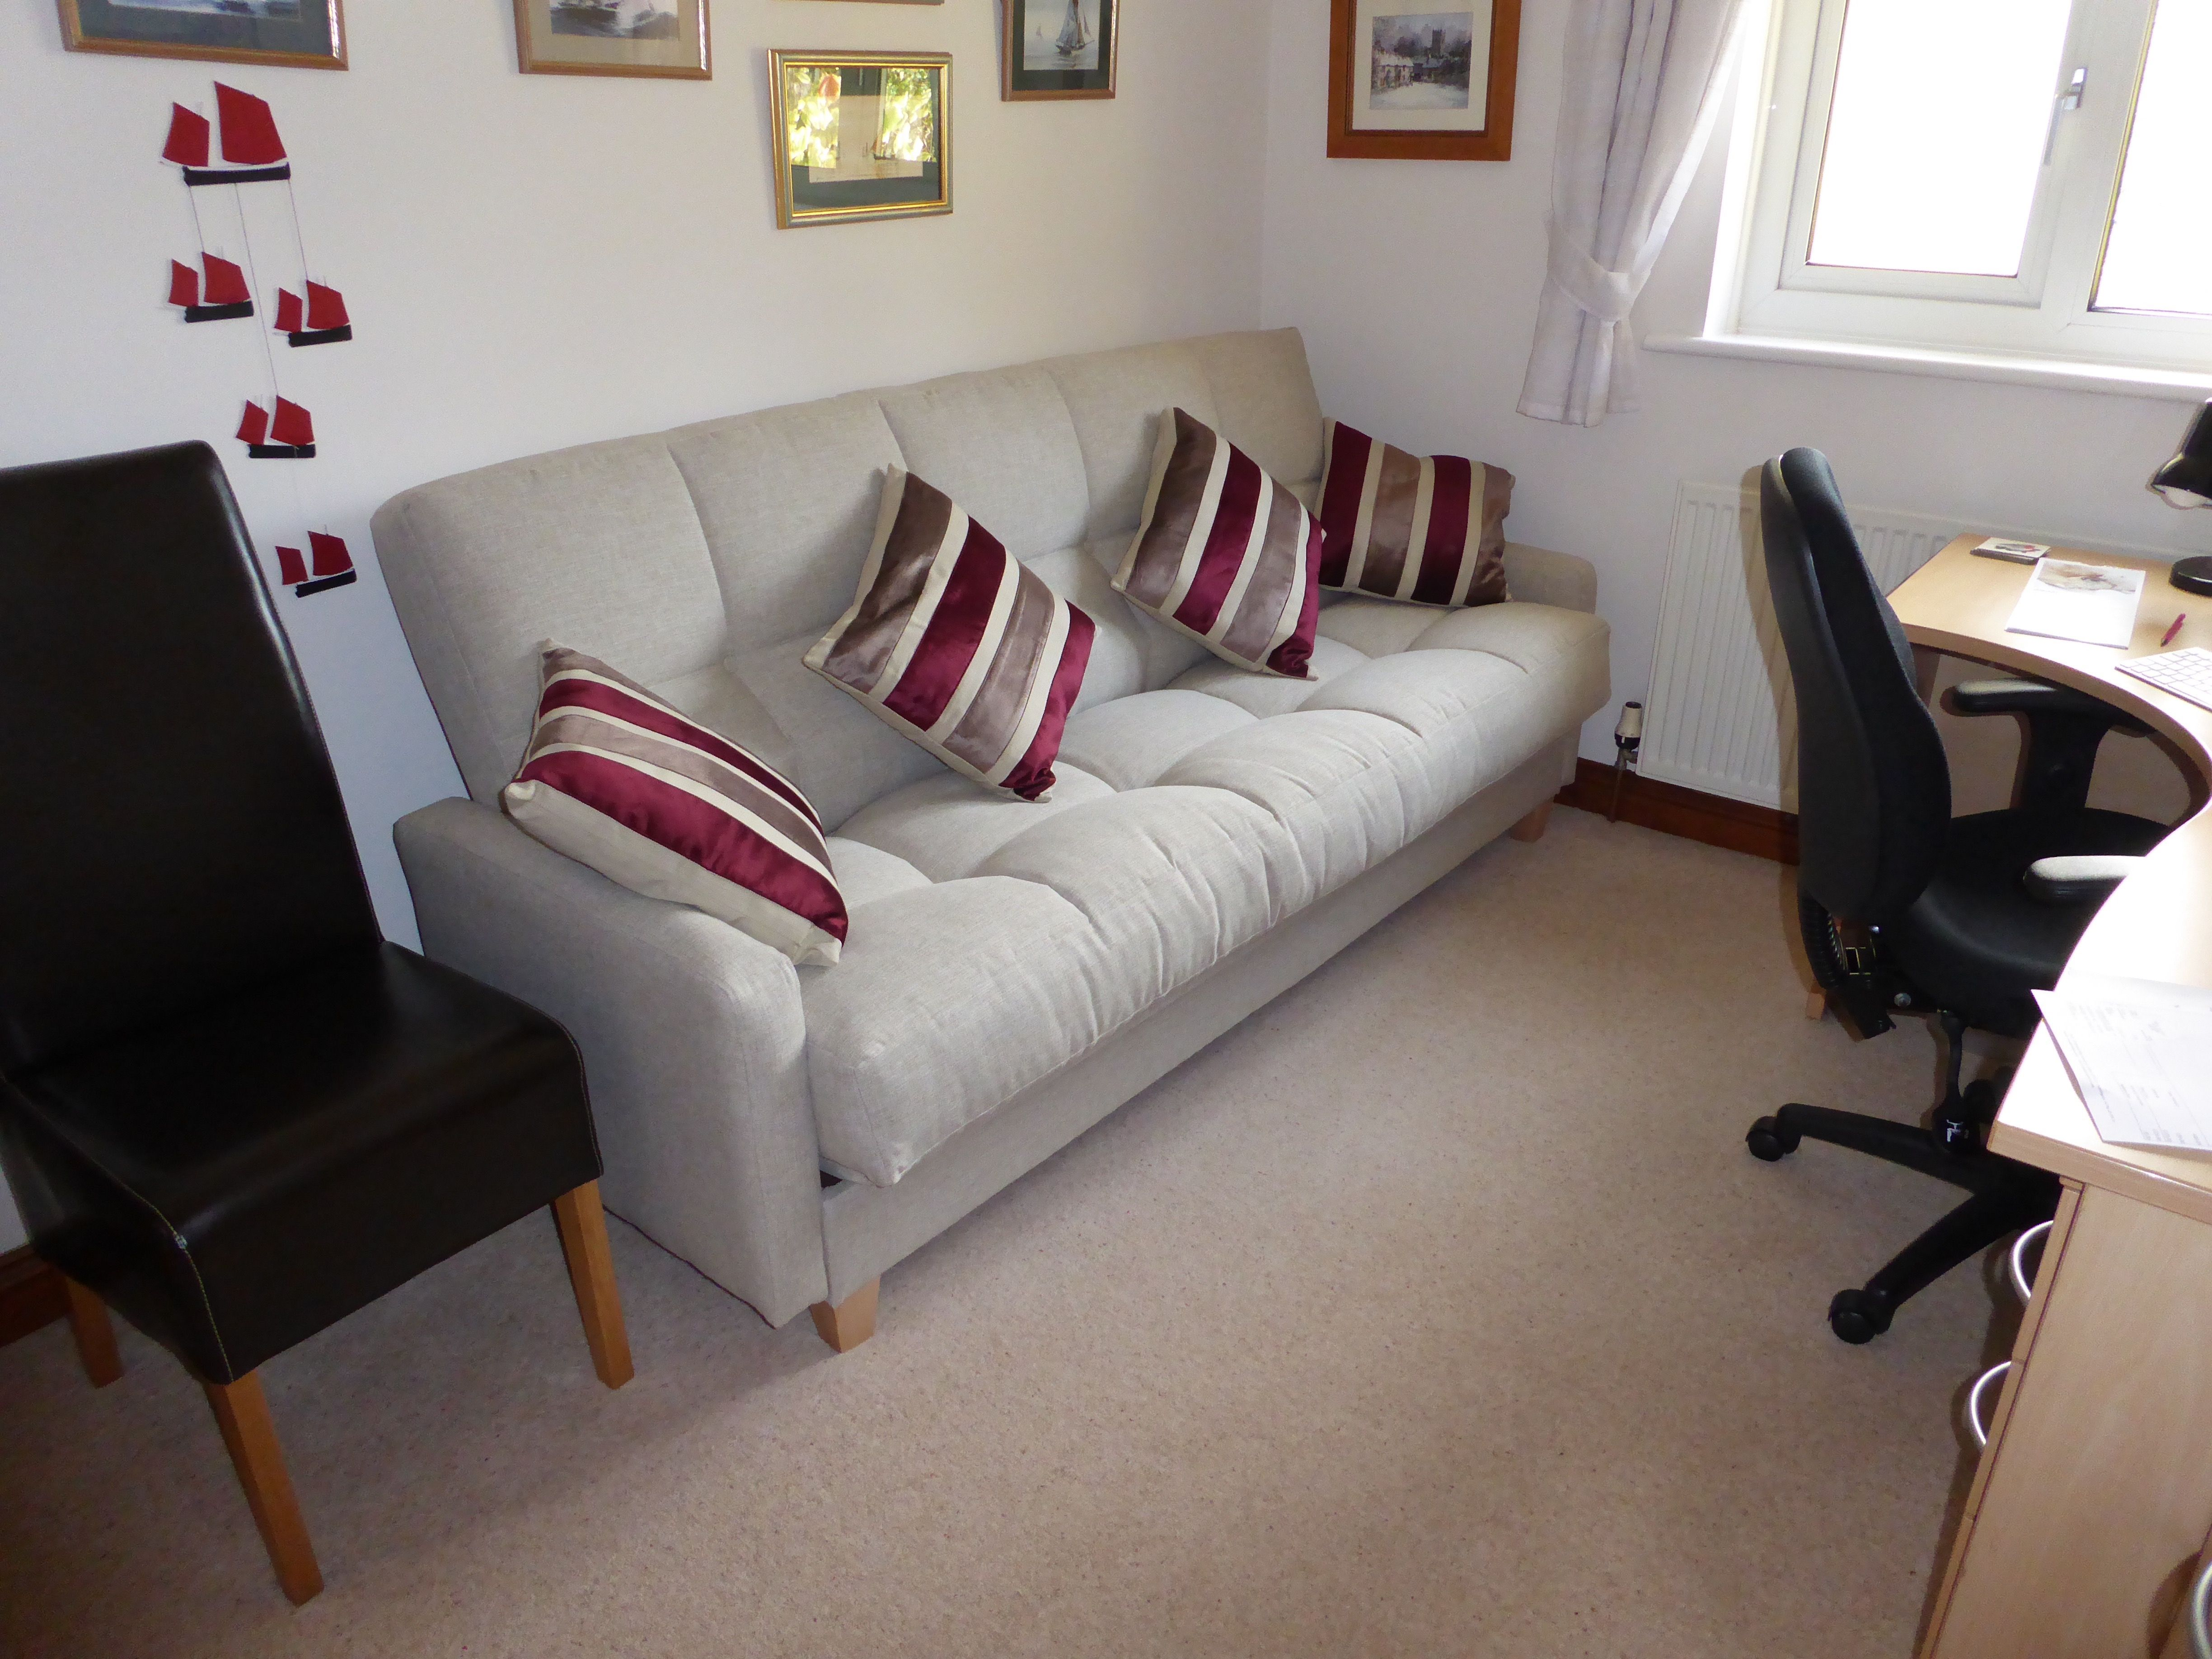 Pin by Sofabedbarn.co.uk on ClickClack Sofa Beds Sofa